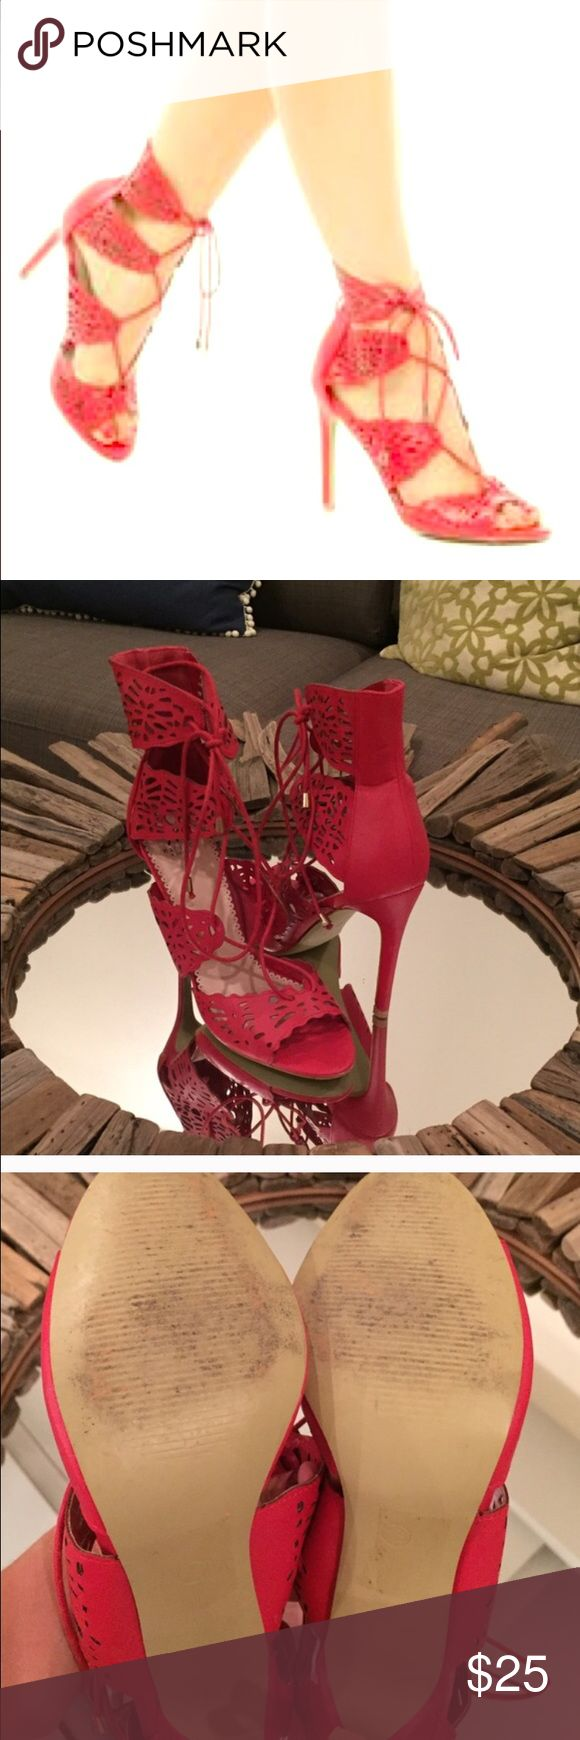 Sexy Cherry Red ShoeDazzle Lace Up Heels Sexy Cherry Red ShoeDazzle Lace Up Heels 👠Worn only once! Elegant and Seductive 💋 Shoe Dazzle Shoes Heels